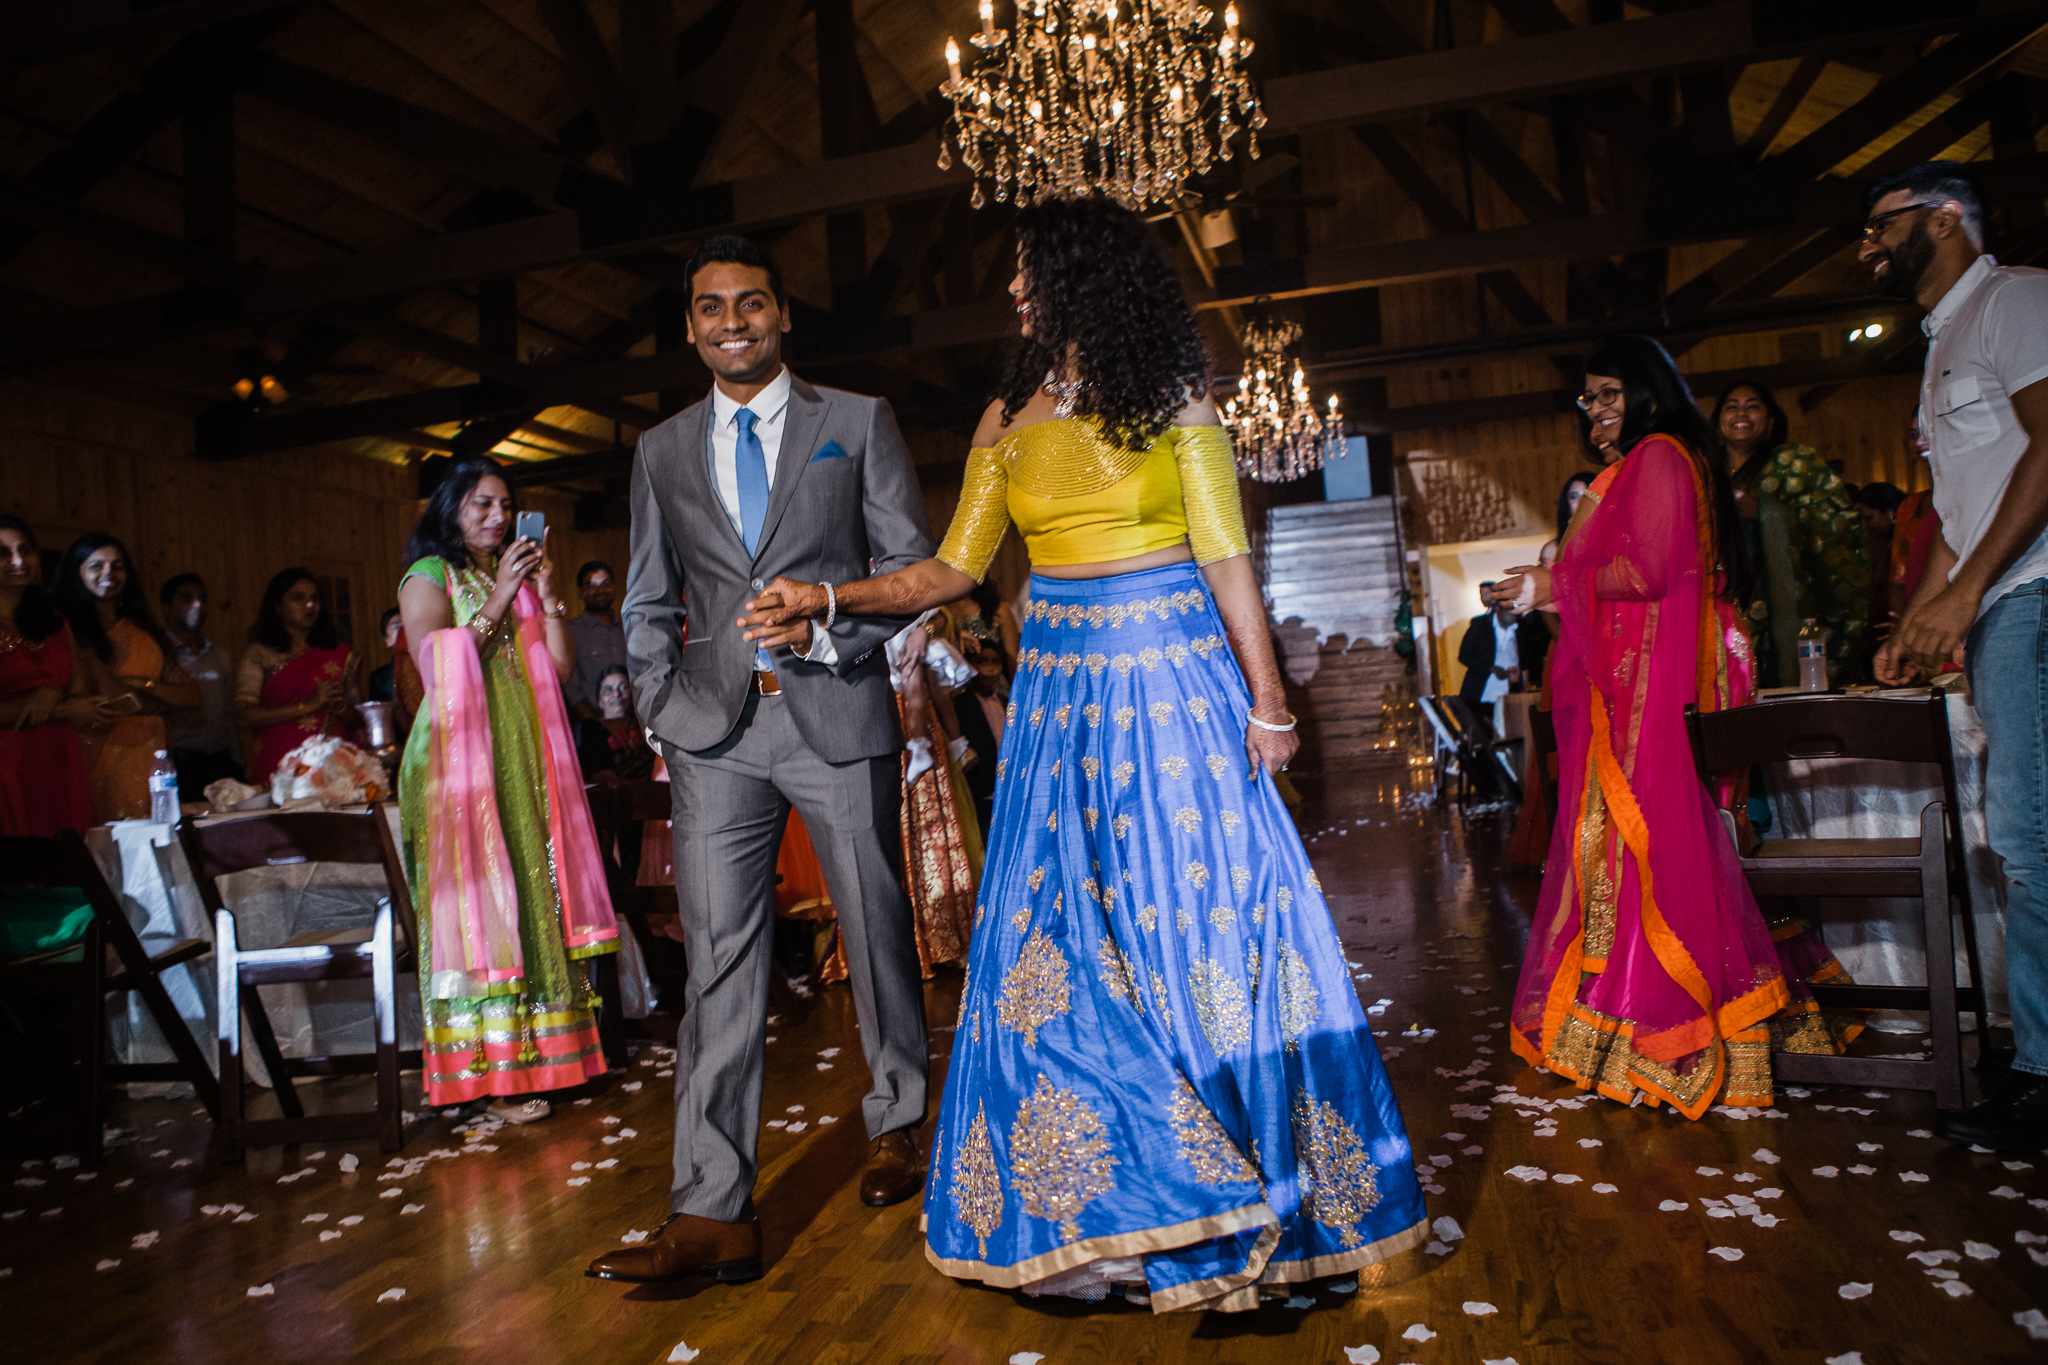 Keerthi and Kishore - Indian Wedding - elizalde photography - Dallas Photographer - South Asian Wedding Photographer - The SPRINGS Event Venue (194 of 226).jpg